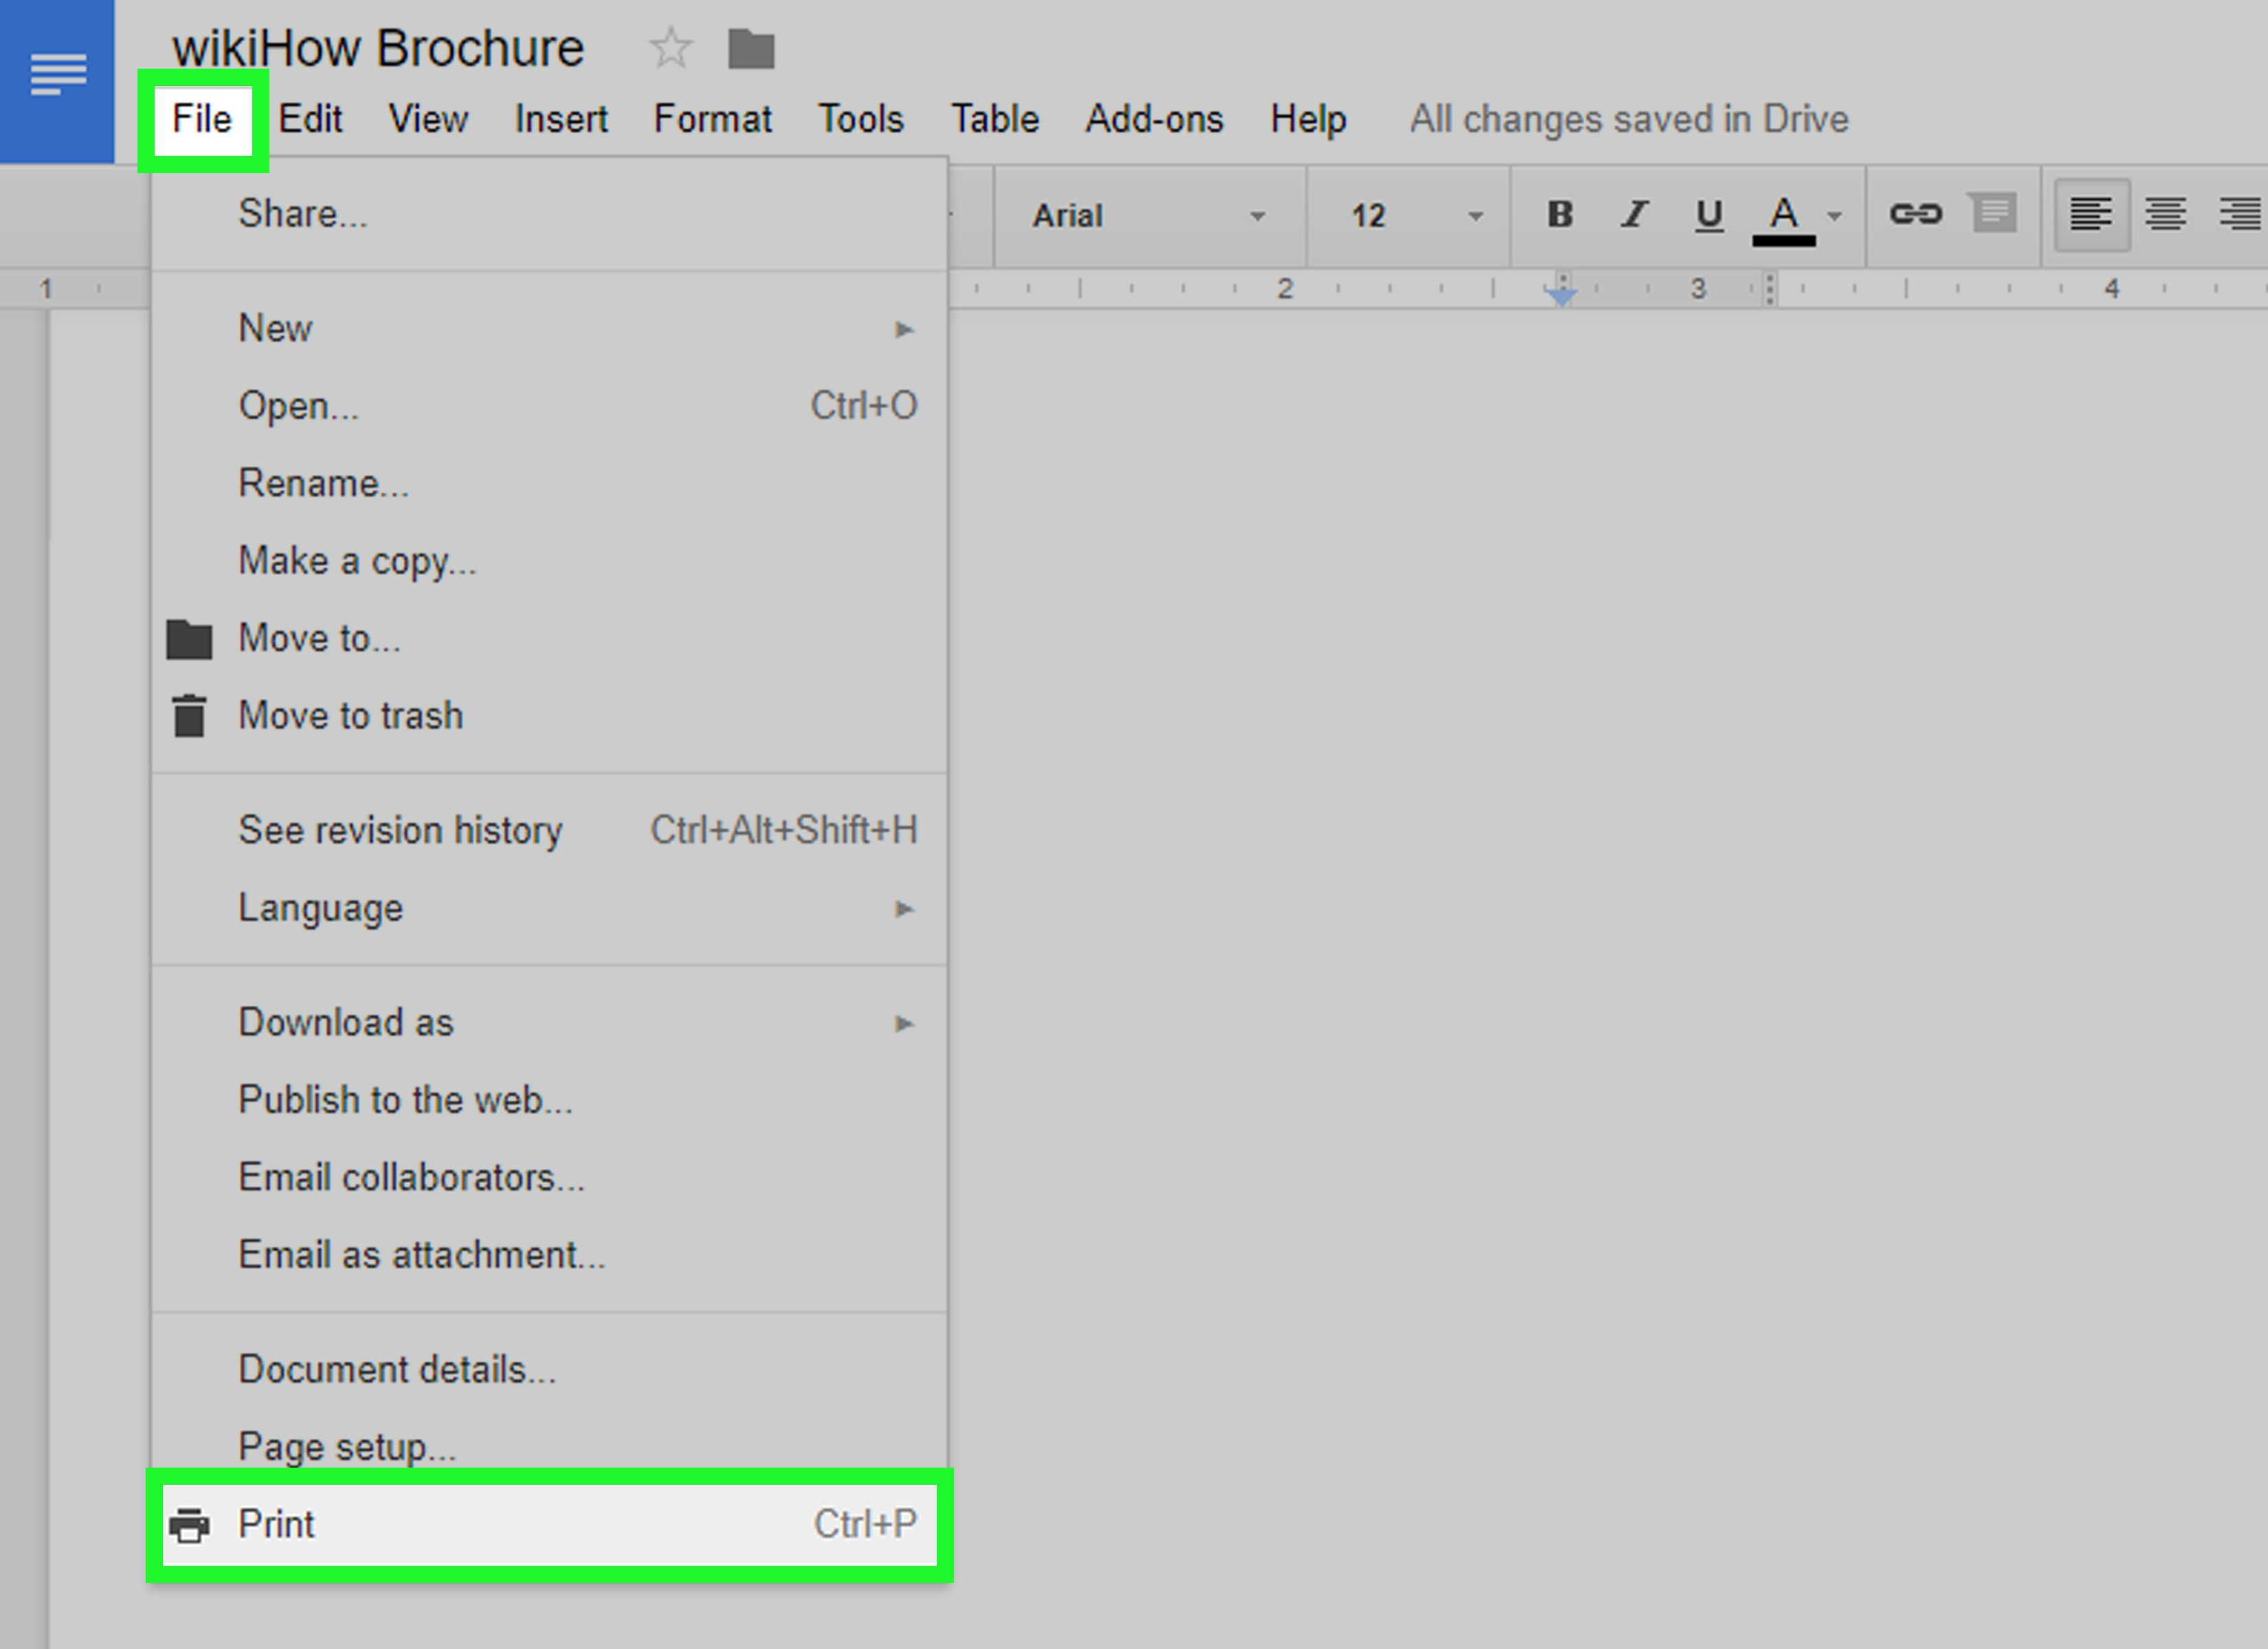 Brochure Templates Google Drive How to Make A Brochure Using Google Docs Wikihow